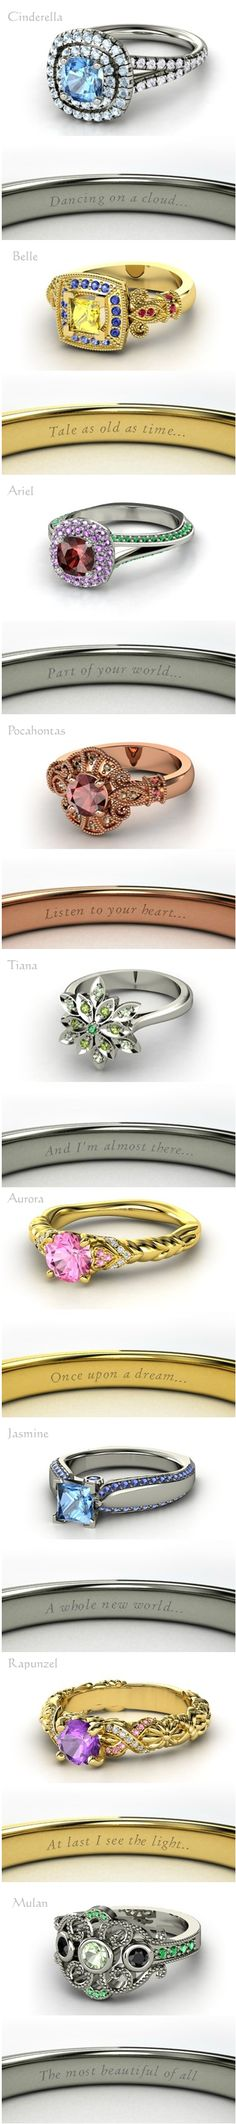 Disney princess rings!